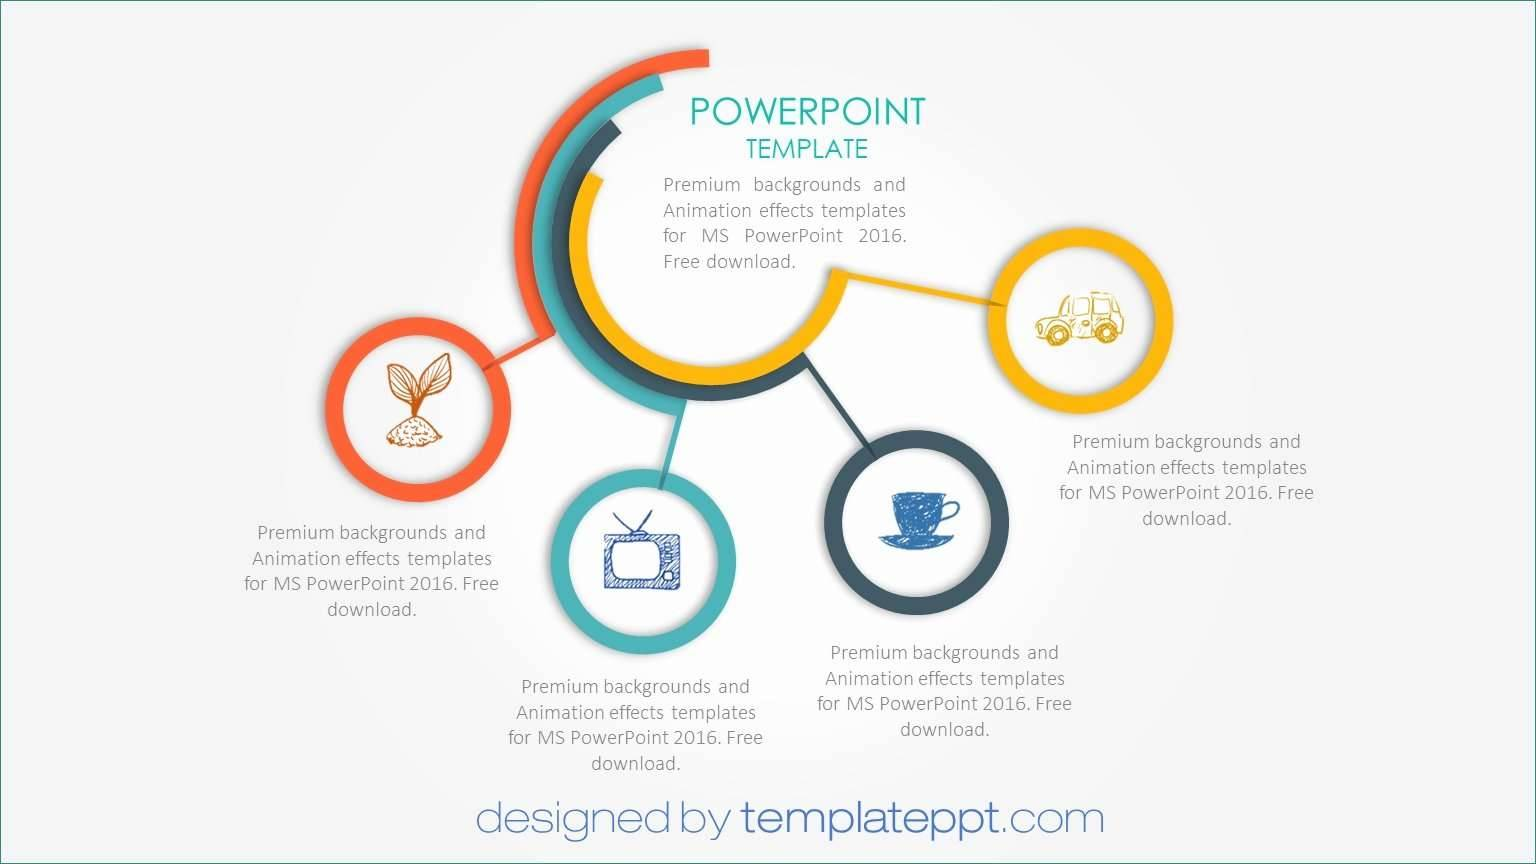 Powerpoint Animated Templates Free Download 2017